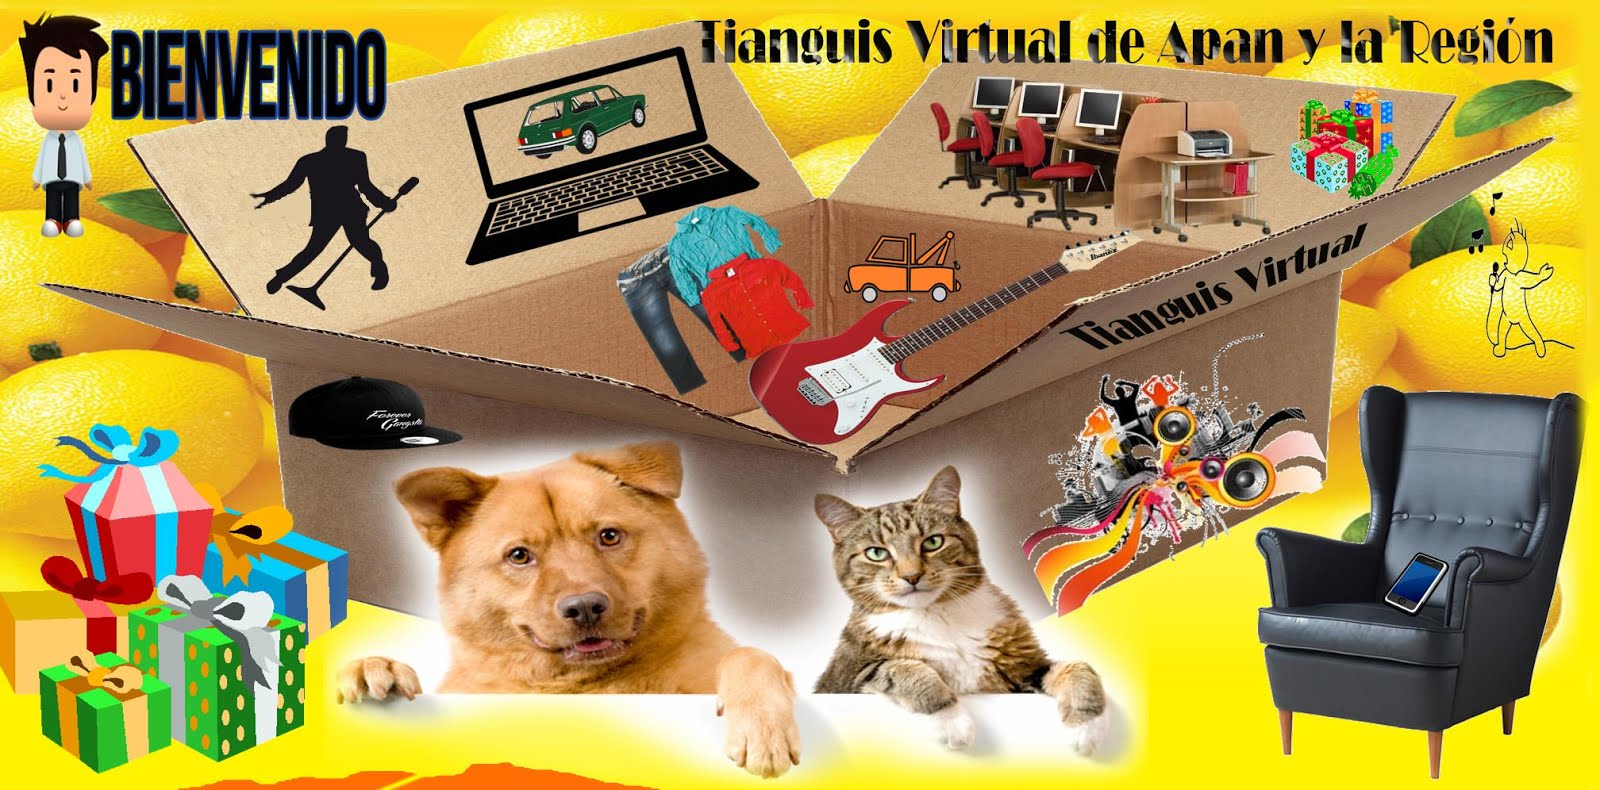 Anunciate en Tianguis Virtual Hidalguense